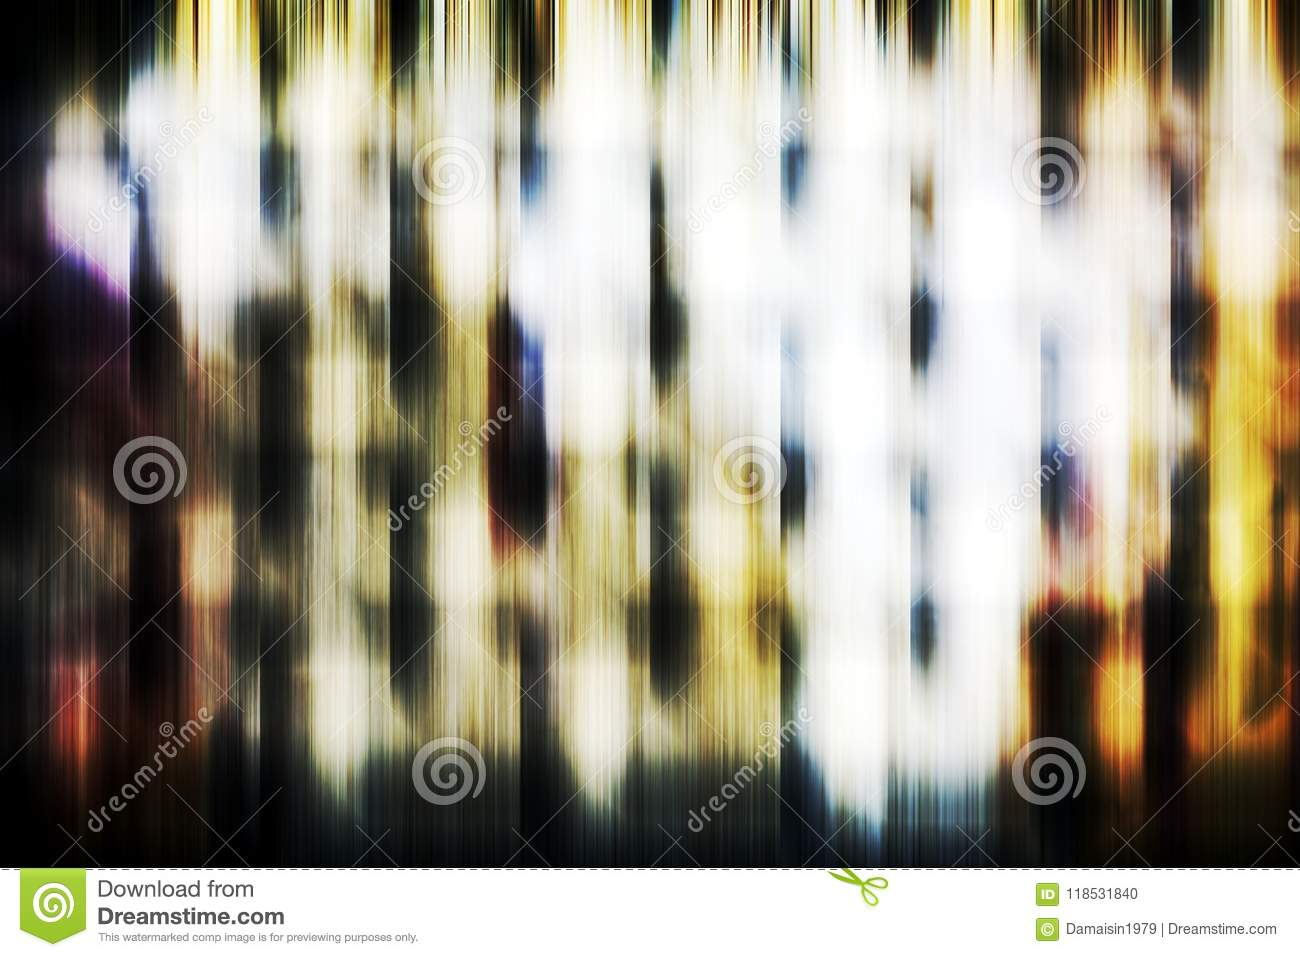 Graphics, dark white lights, abstract shaped background